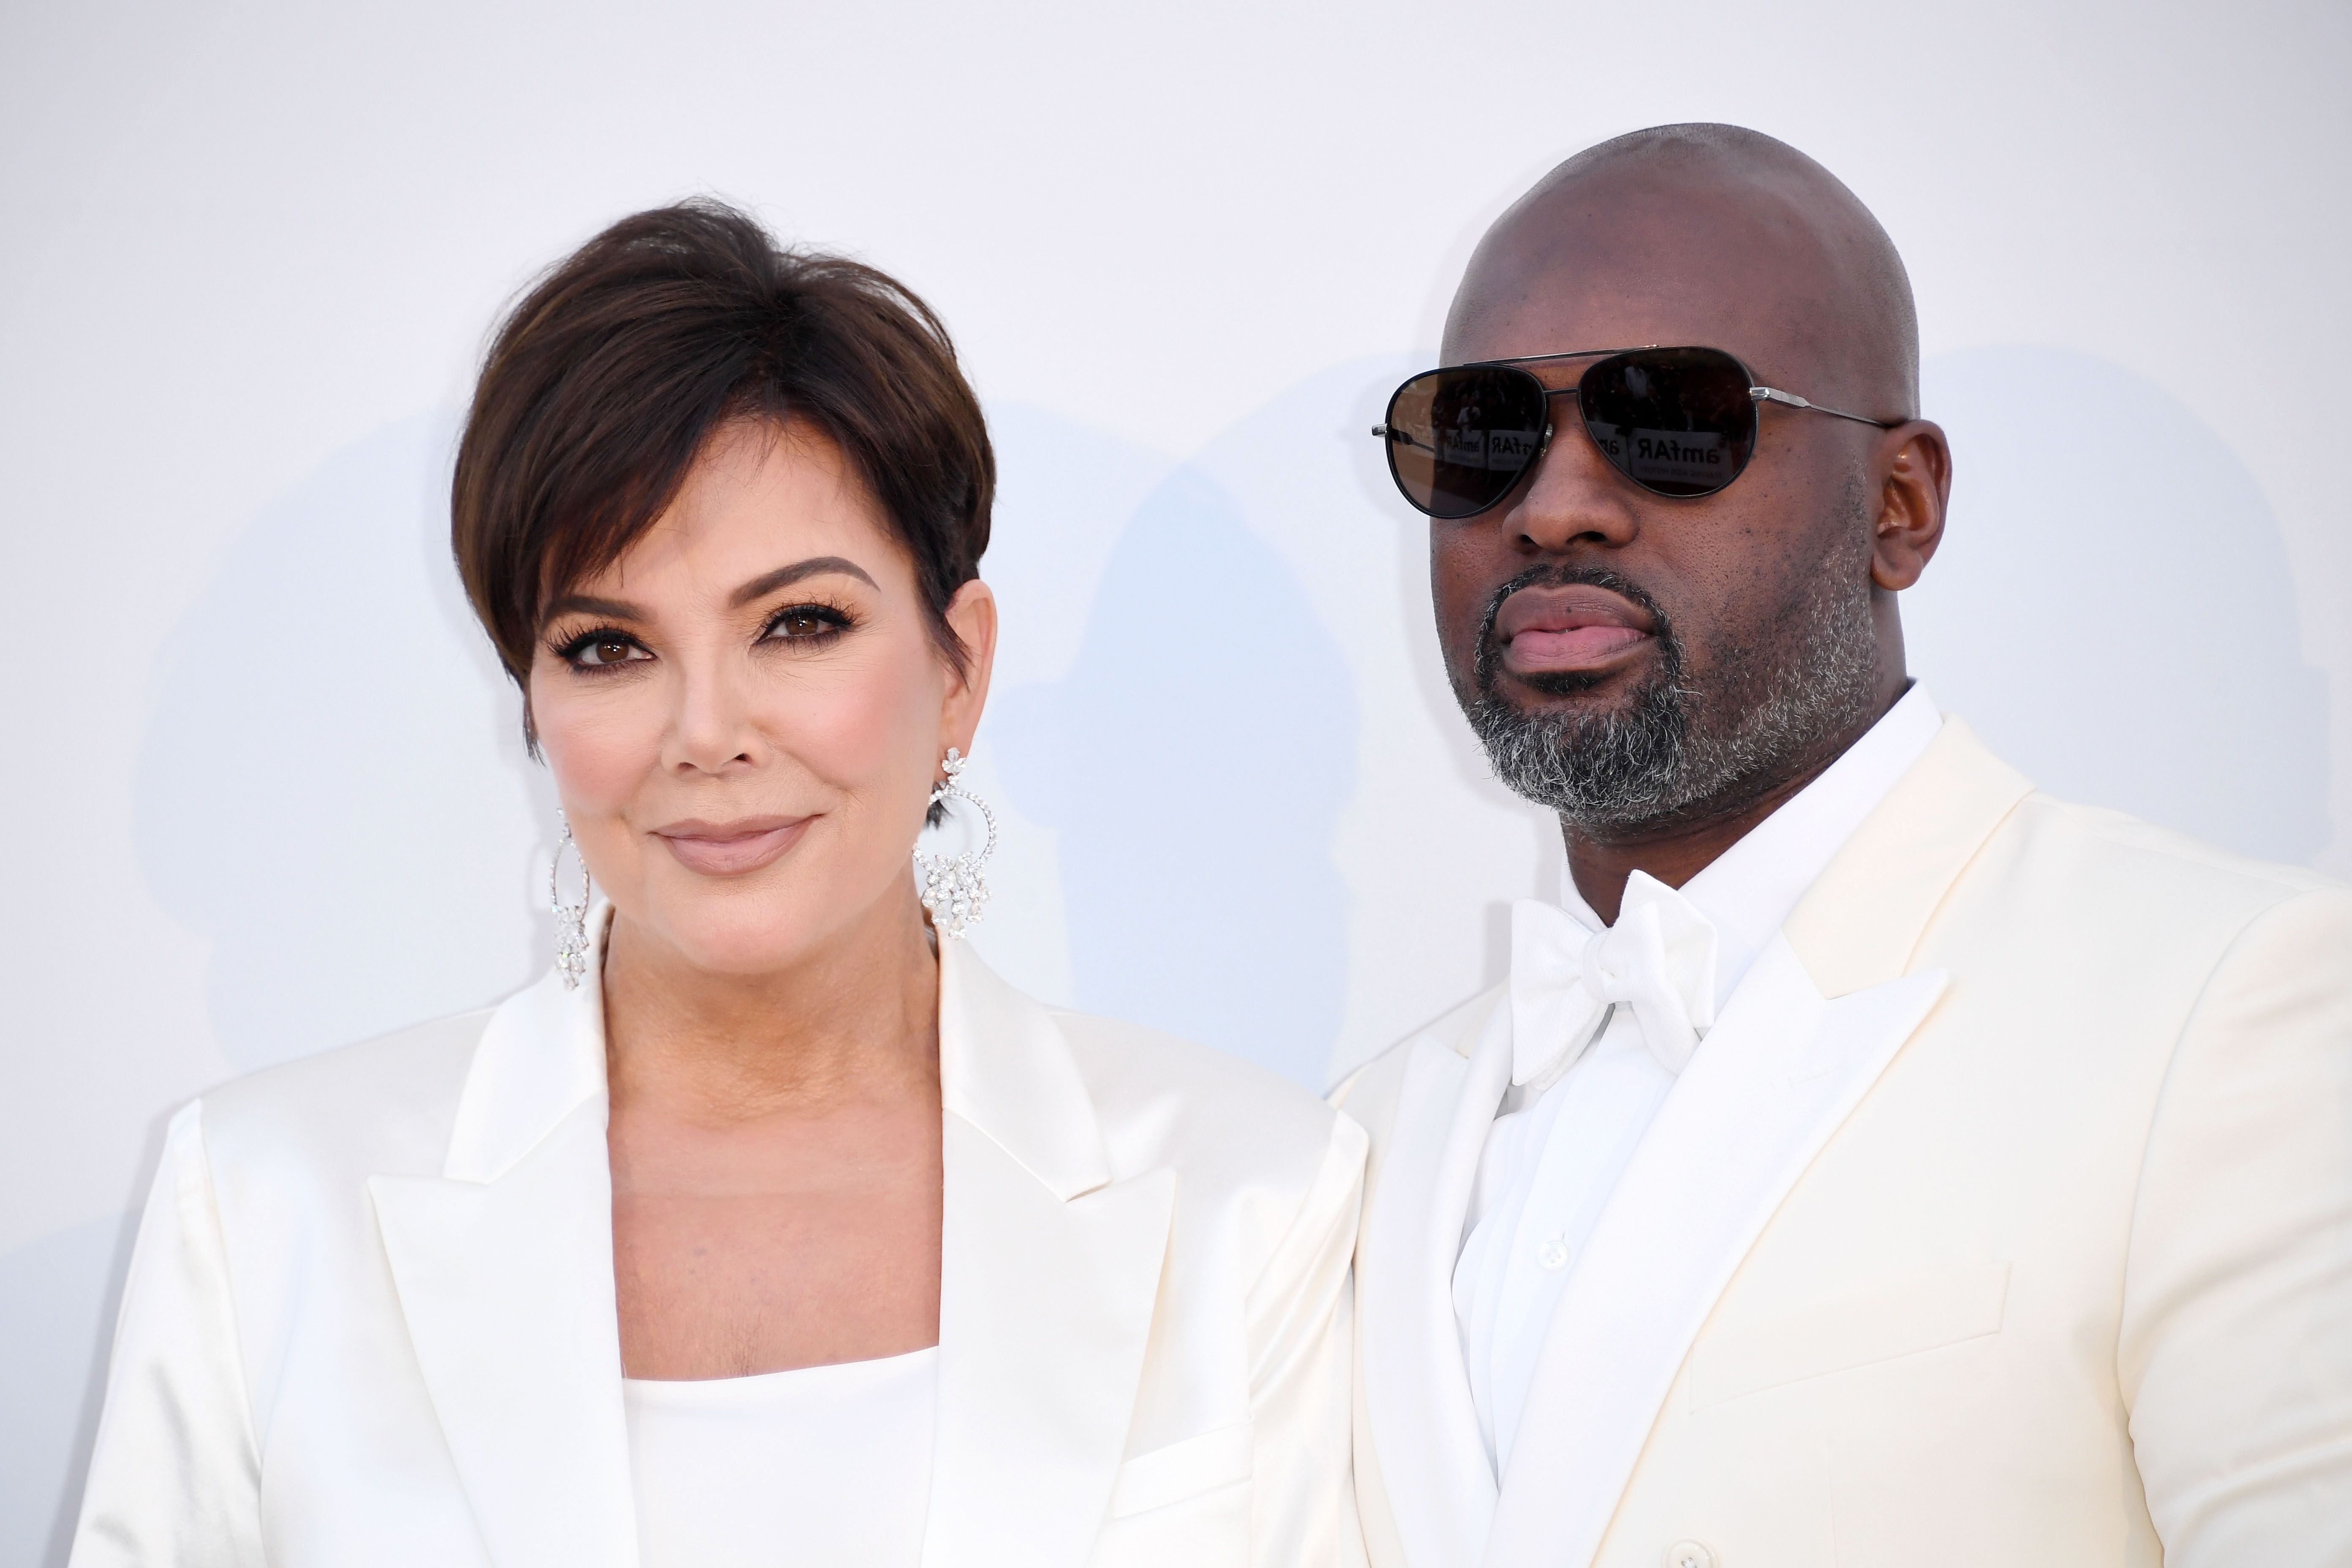 How Does Kris Jenner S 39 Year Old Boyfriend Corey Gamble Feel About His Future With Her